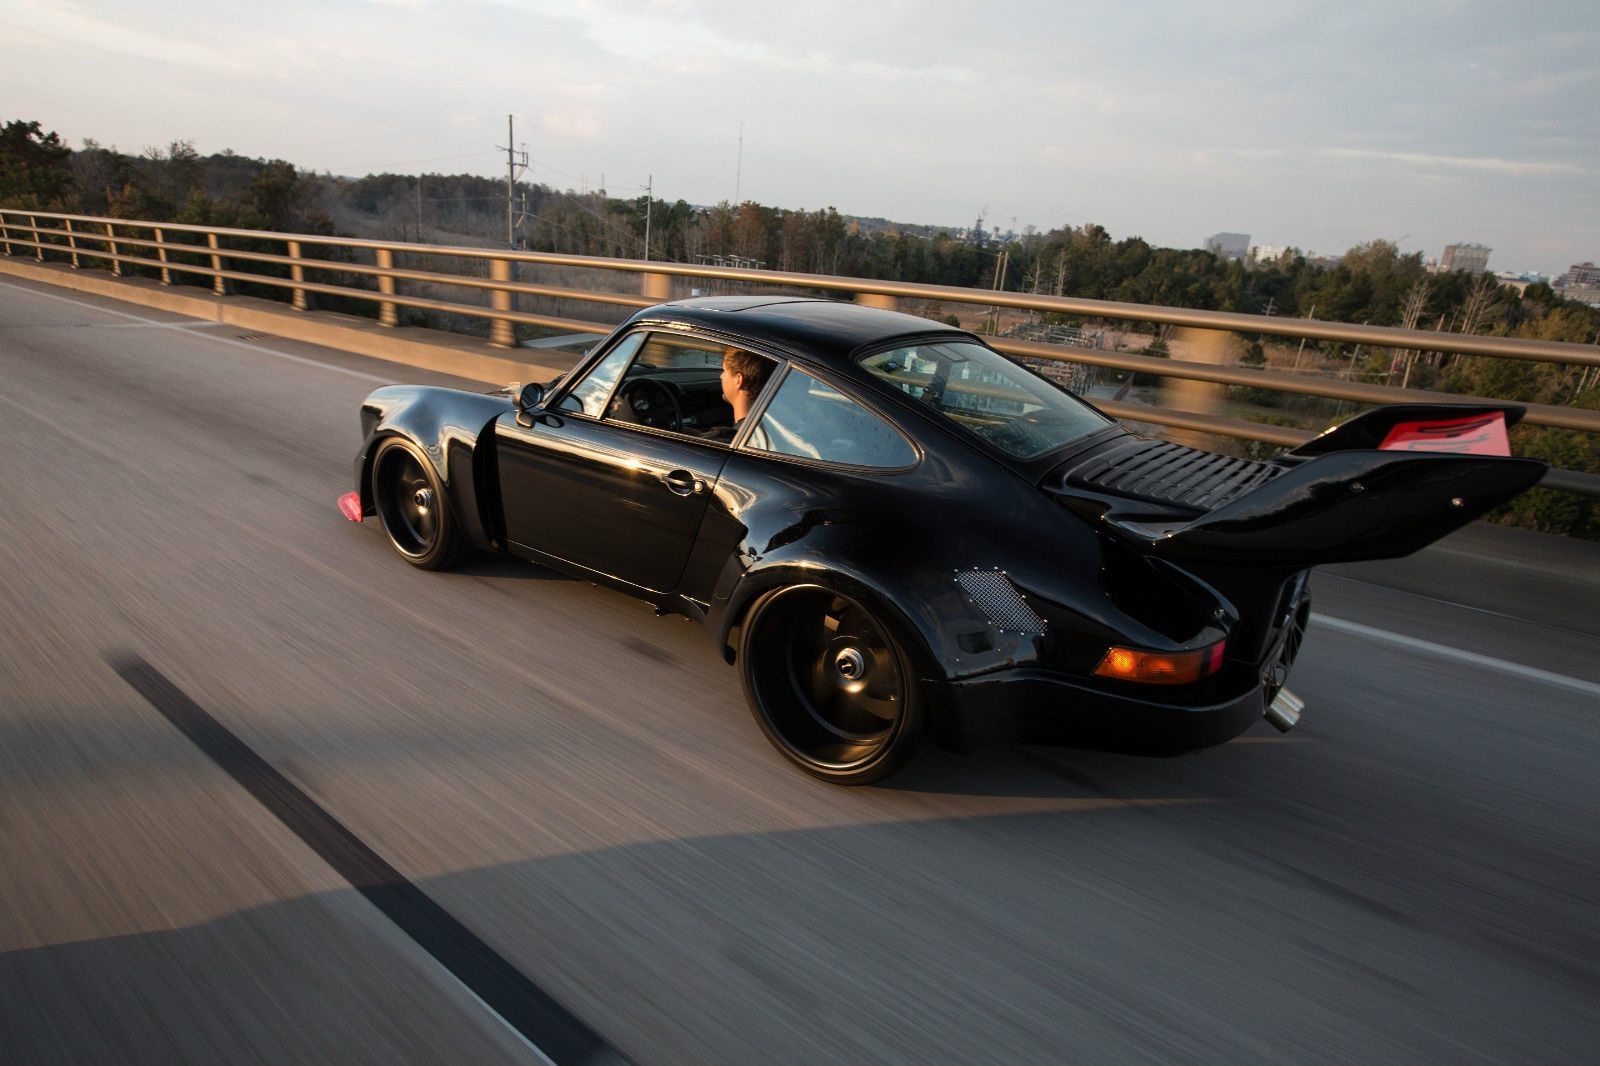 This Modified Porsche 930 Turbo Is What Hardcore Dreams Are Made Of